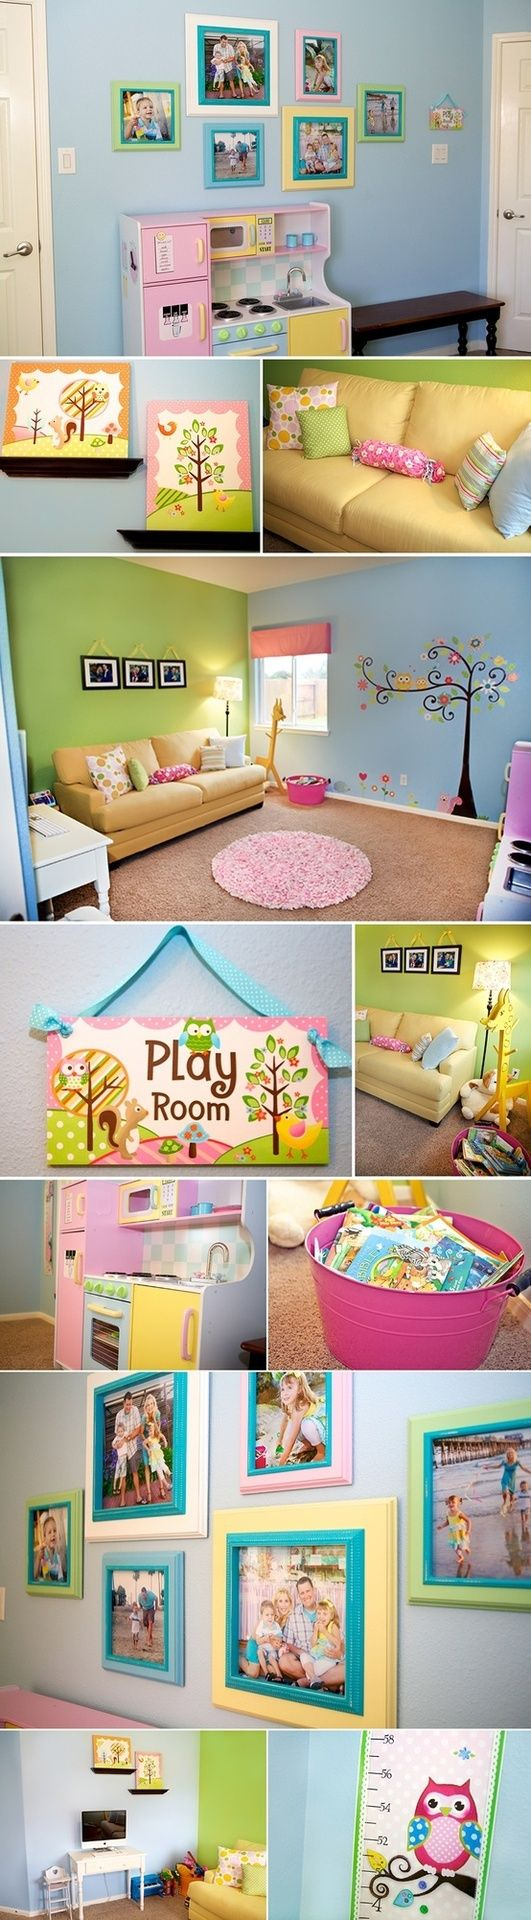 The perfect playroom – just need to change colors for a boys version!